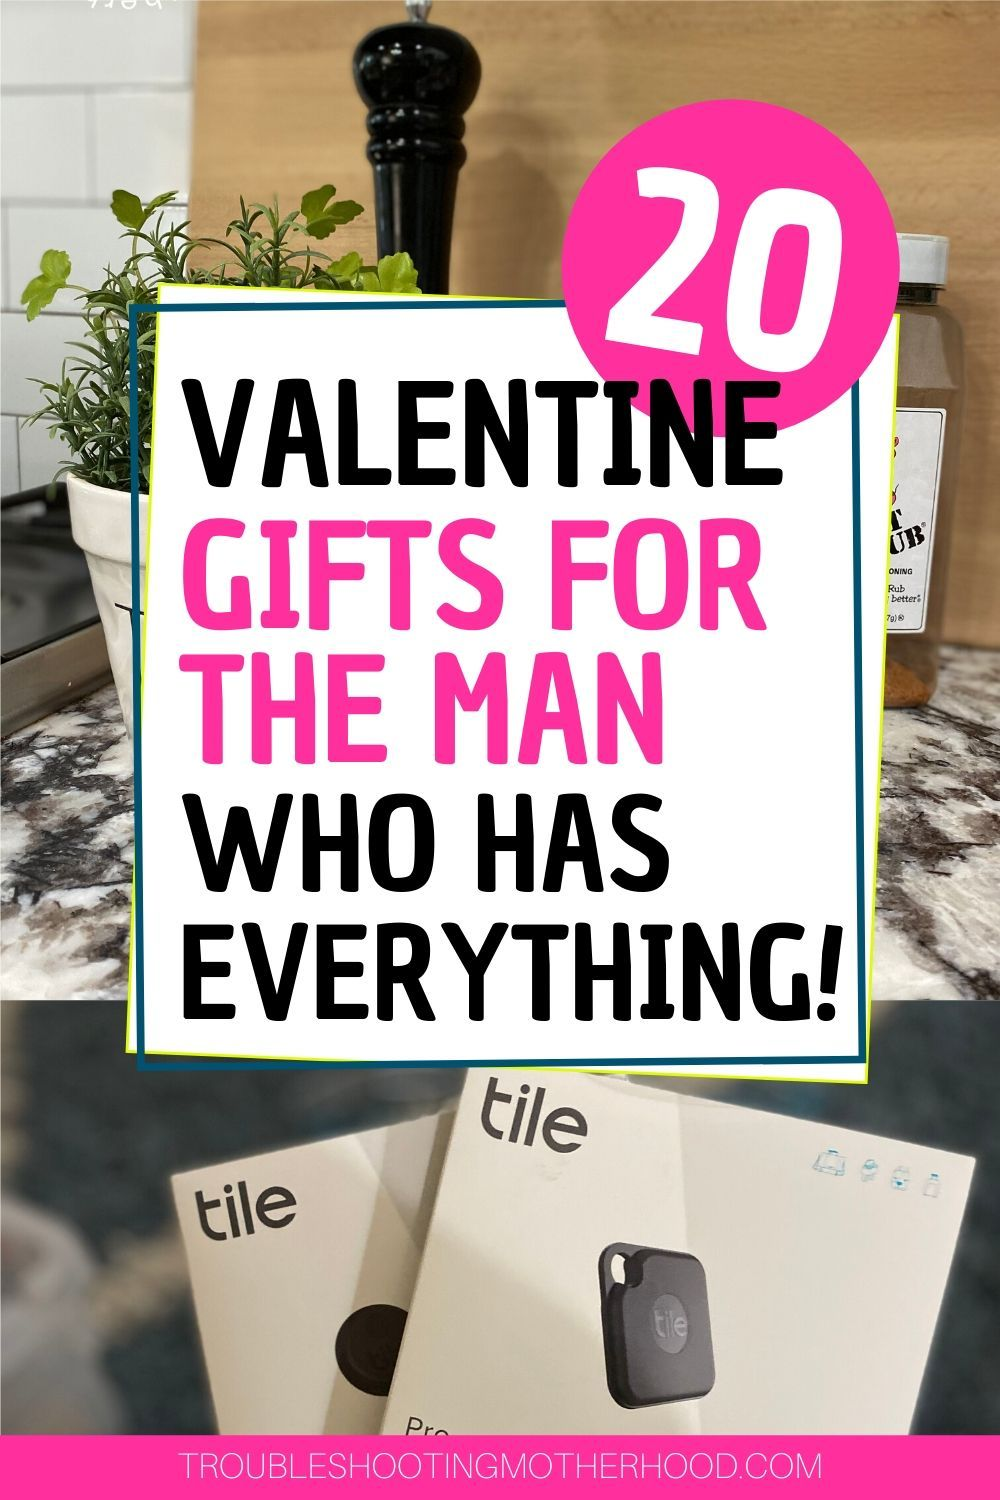 The Best Valentine's Gifts for the Man Who Has Everything